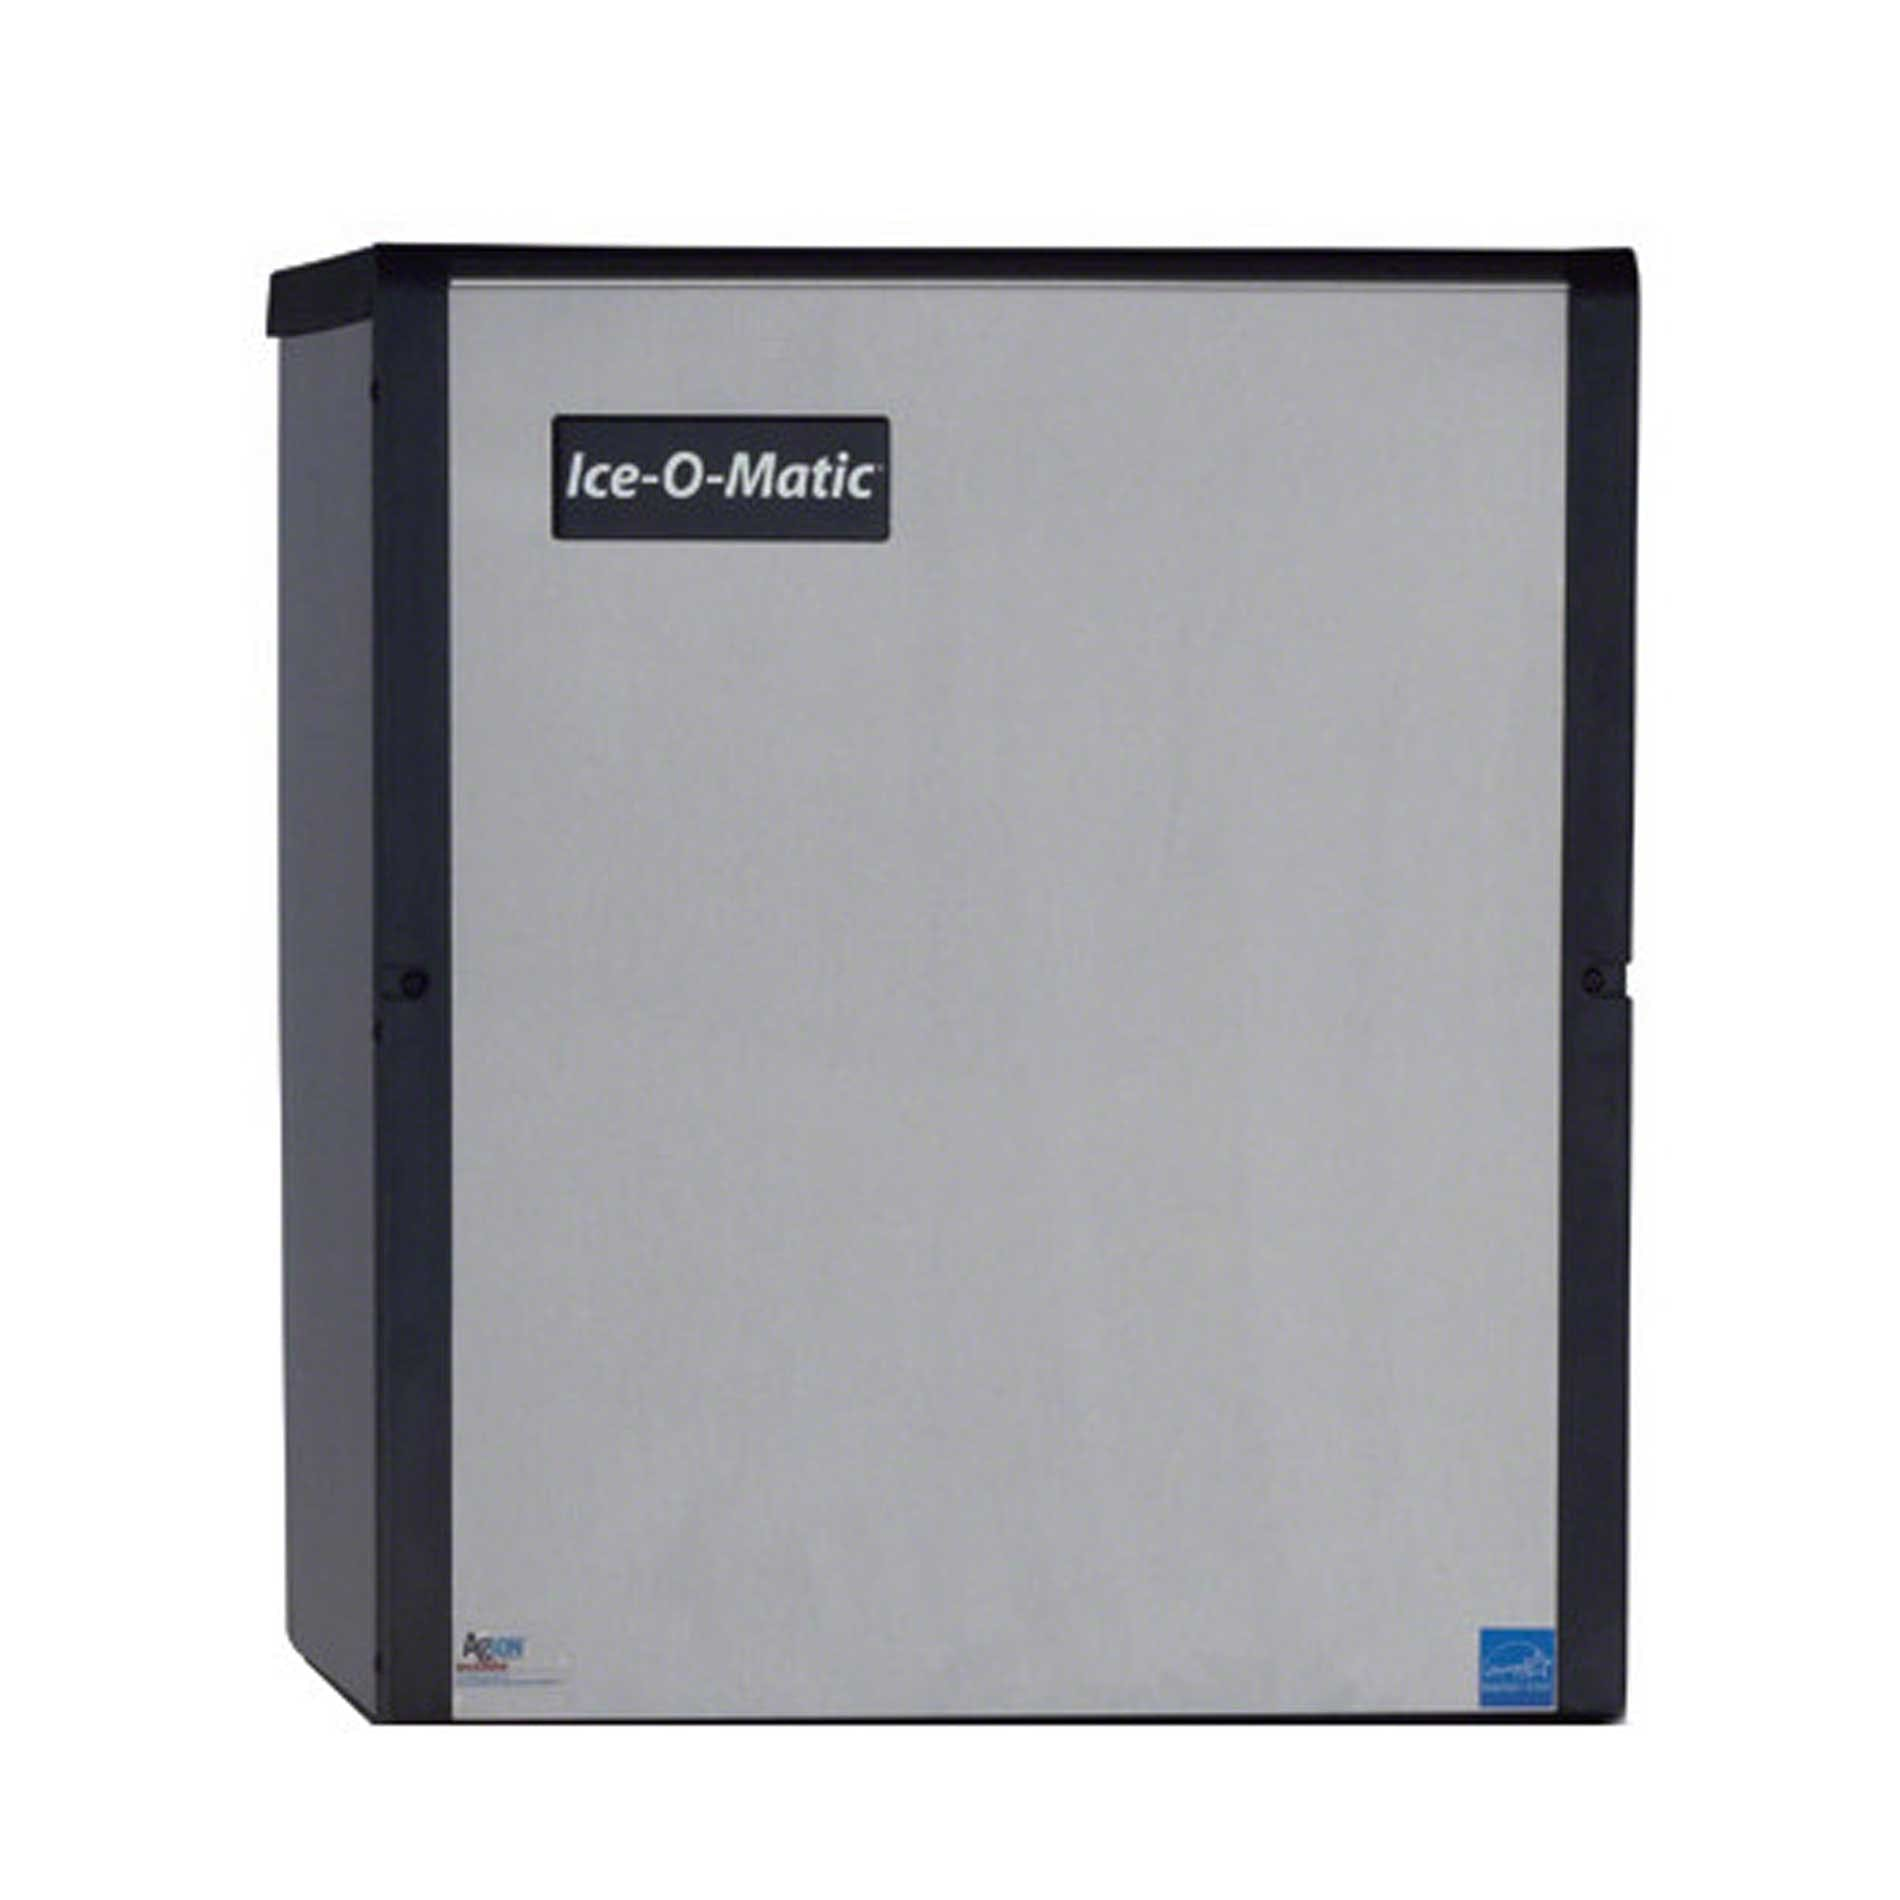 Ice-O-Matic - ICE0726FR 810 lb Full-Size Cube Ice Machine Ice machine sold by Food Service Warehouse